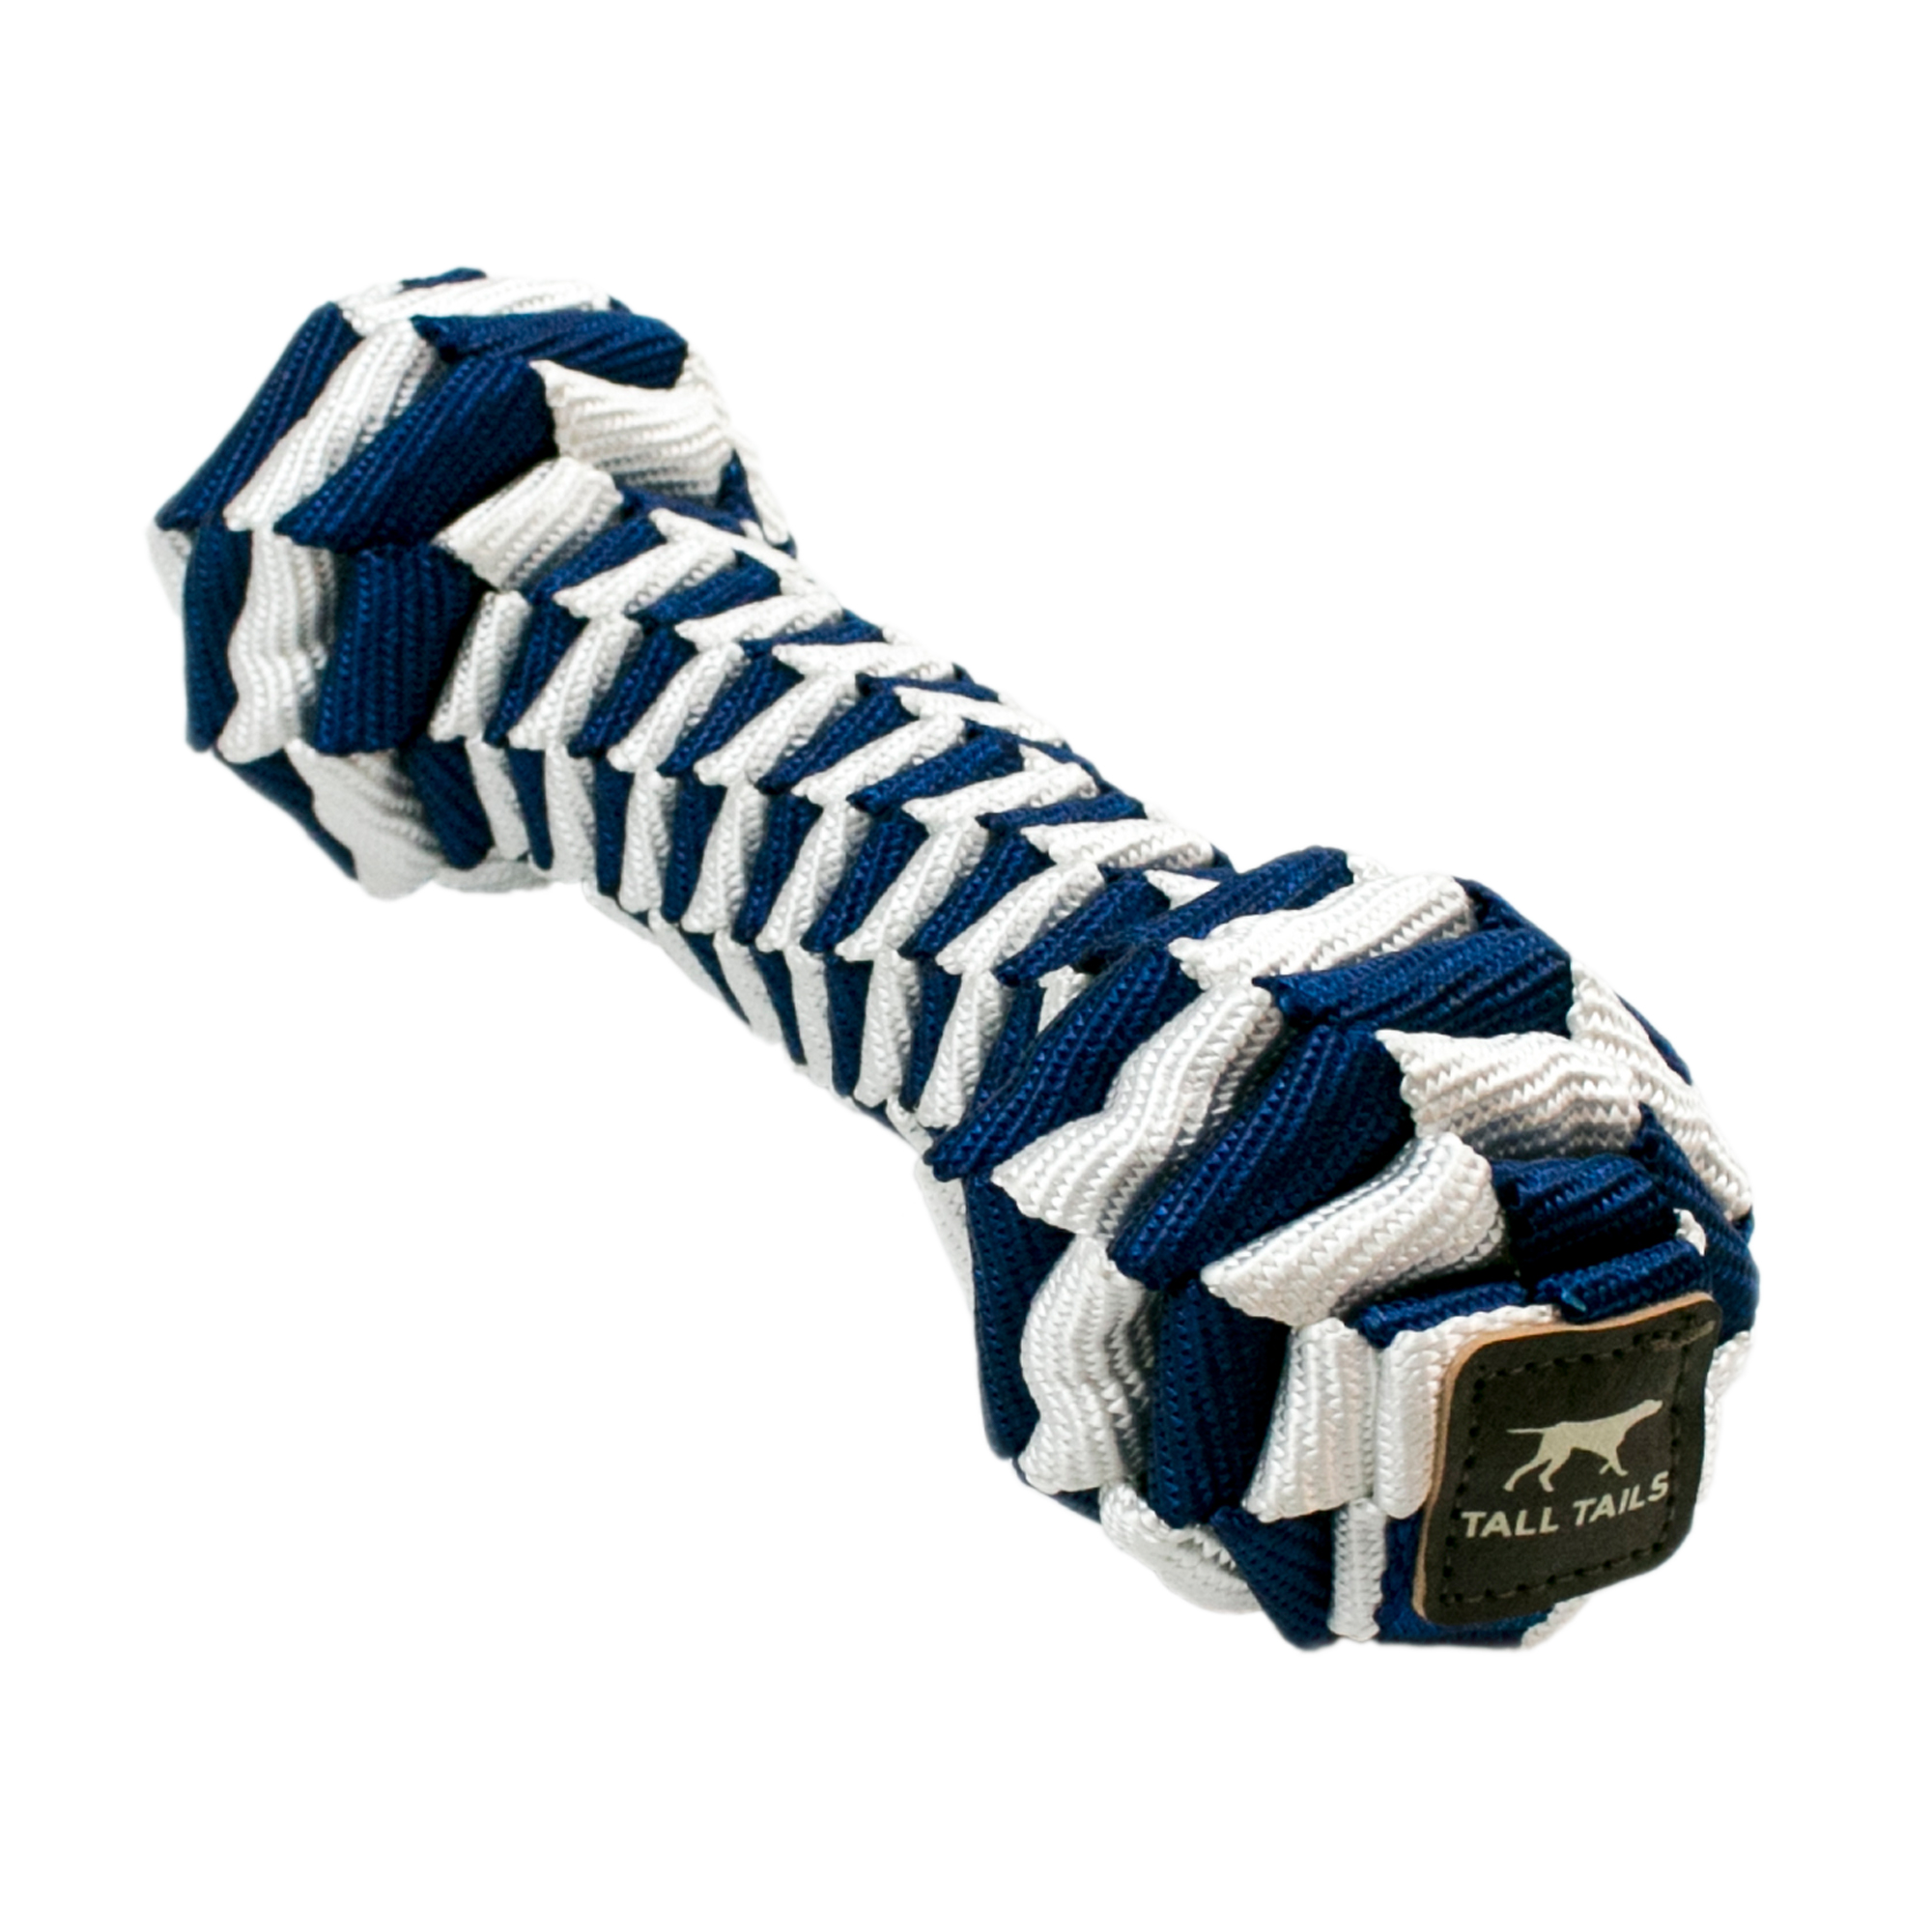 Tall Tails Navy Braided Bone Dog Toy, 9-in